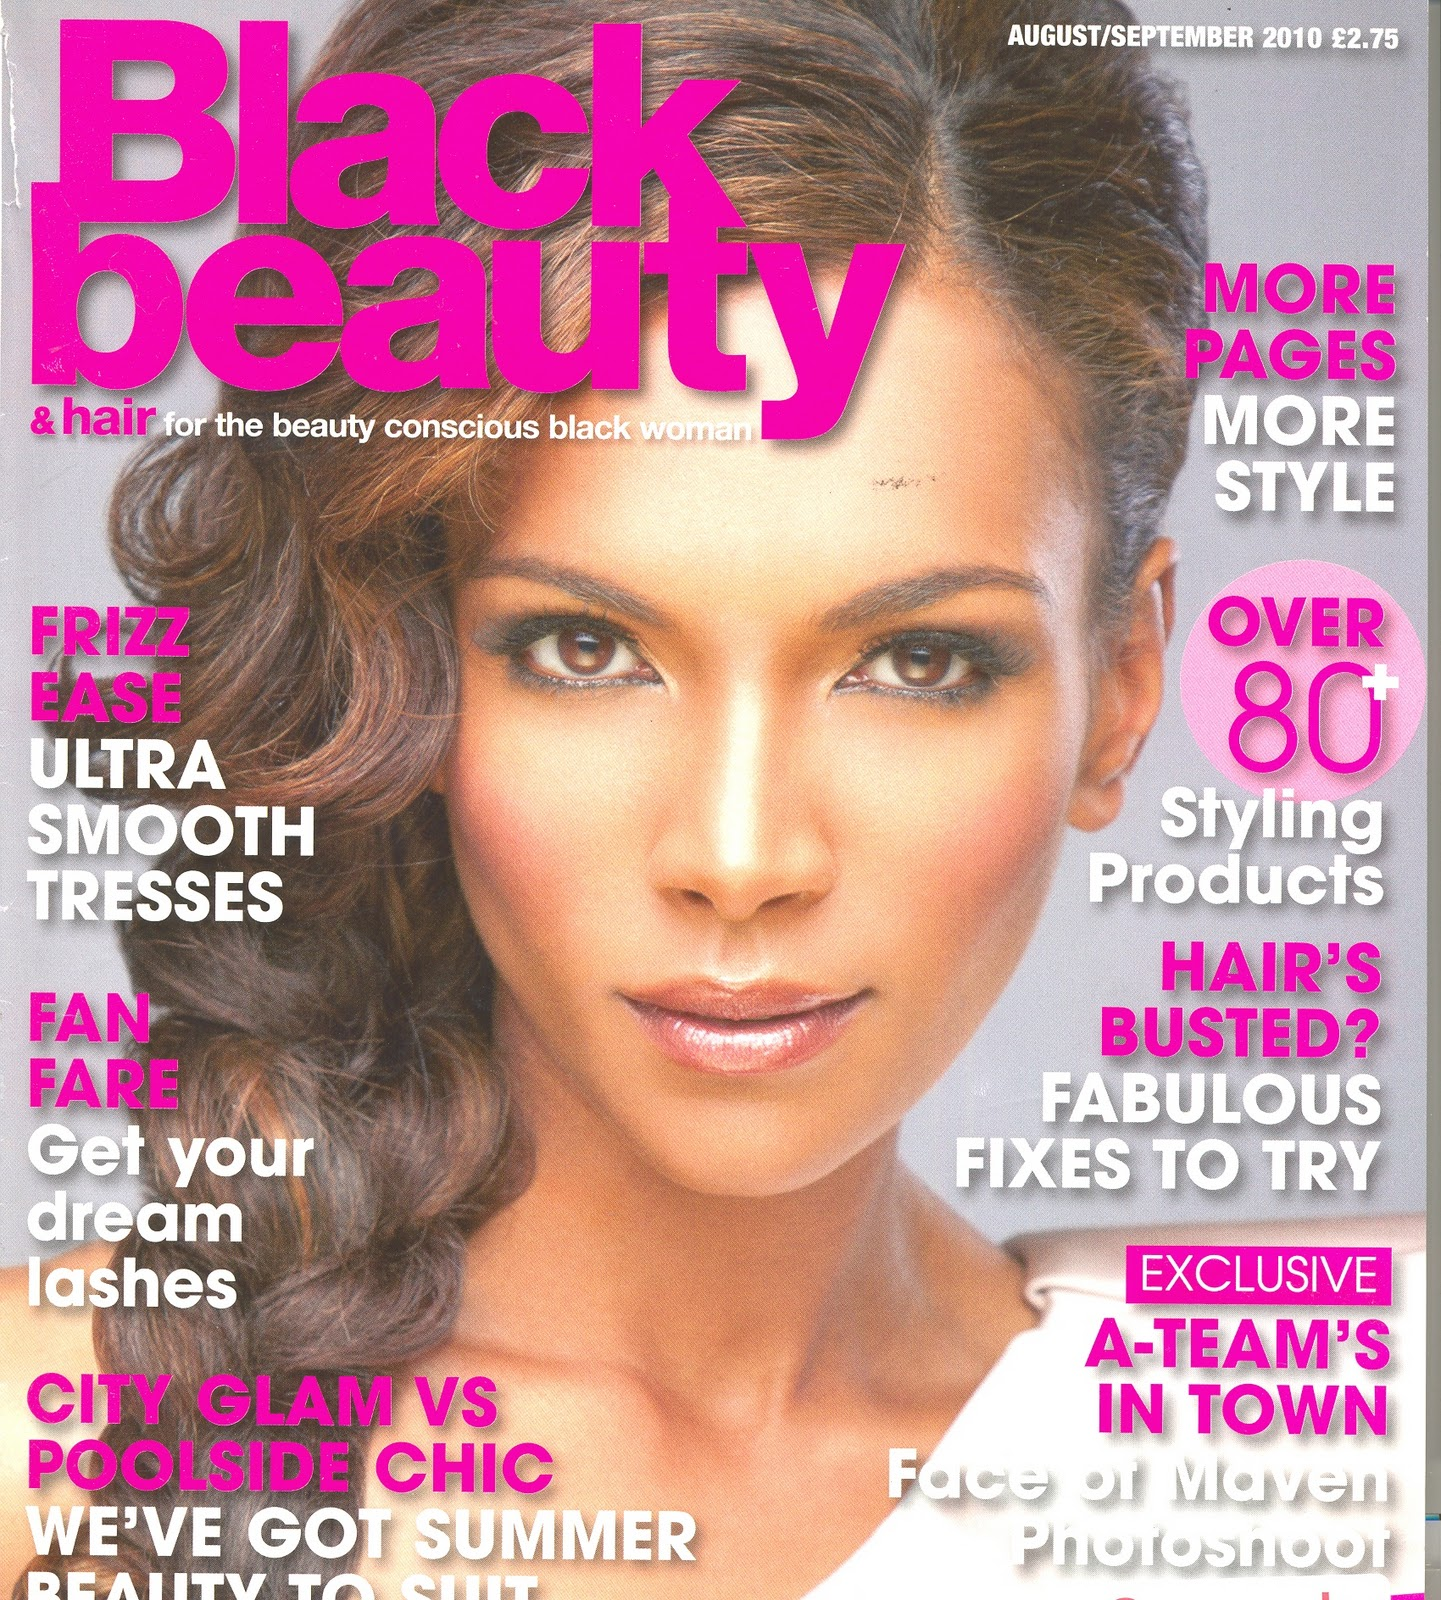 10 Pansy Black Beauty: Ghana Rising: Hair: Vicky Boateng On The Cover Of Black